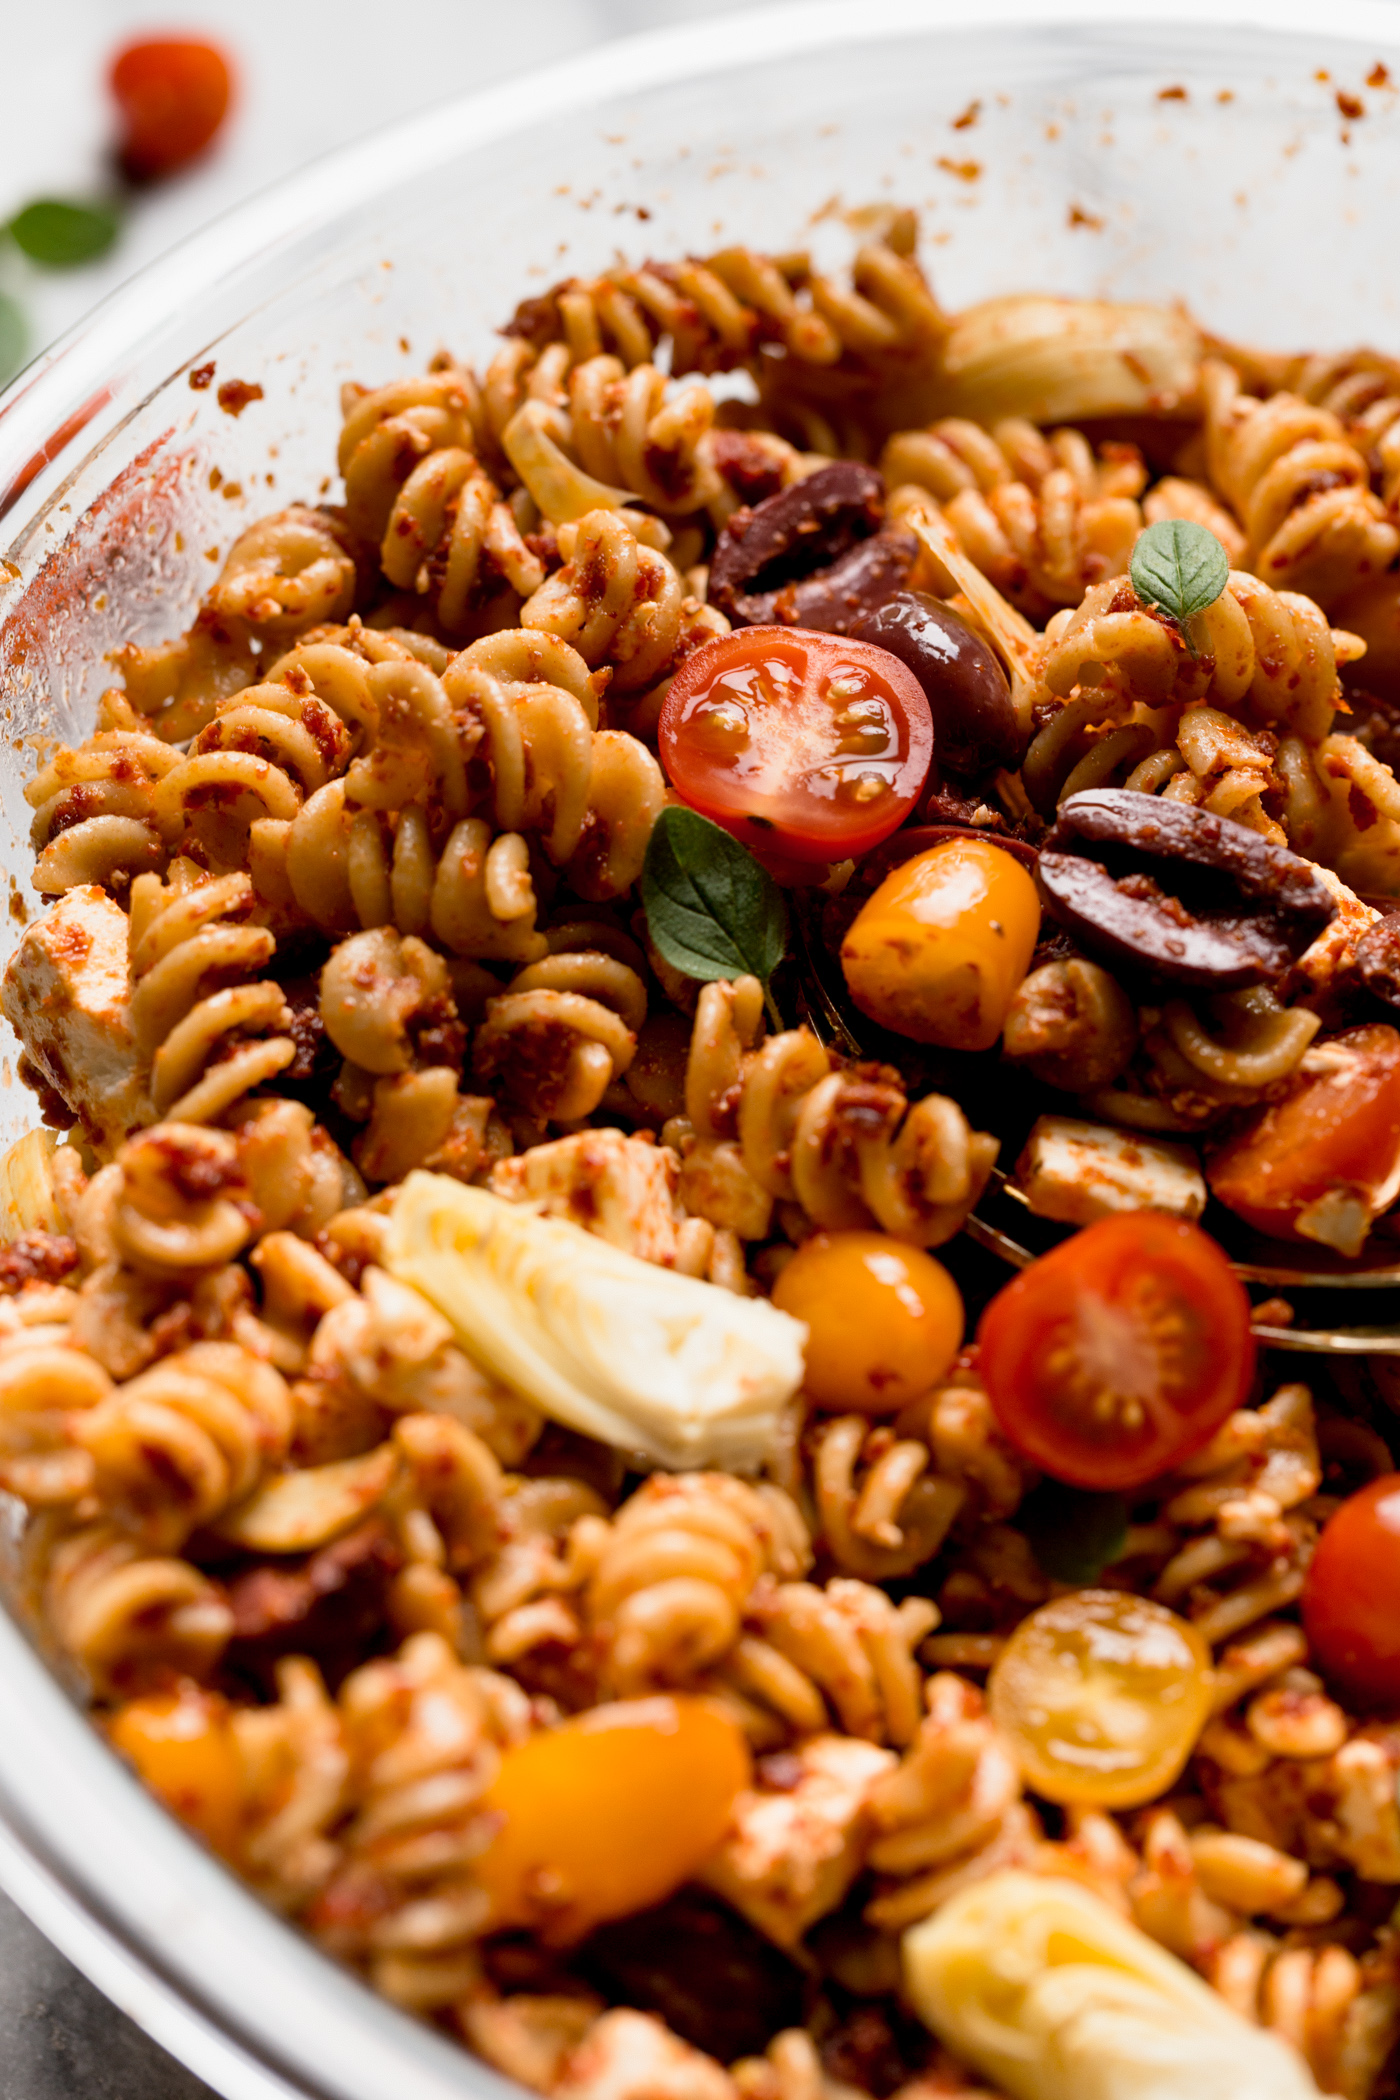 Sundried Tomato Pasta Salad Only 6 Ingredients Plays